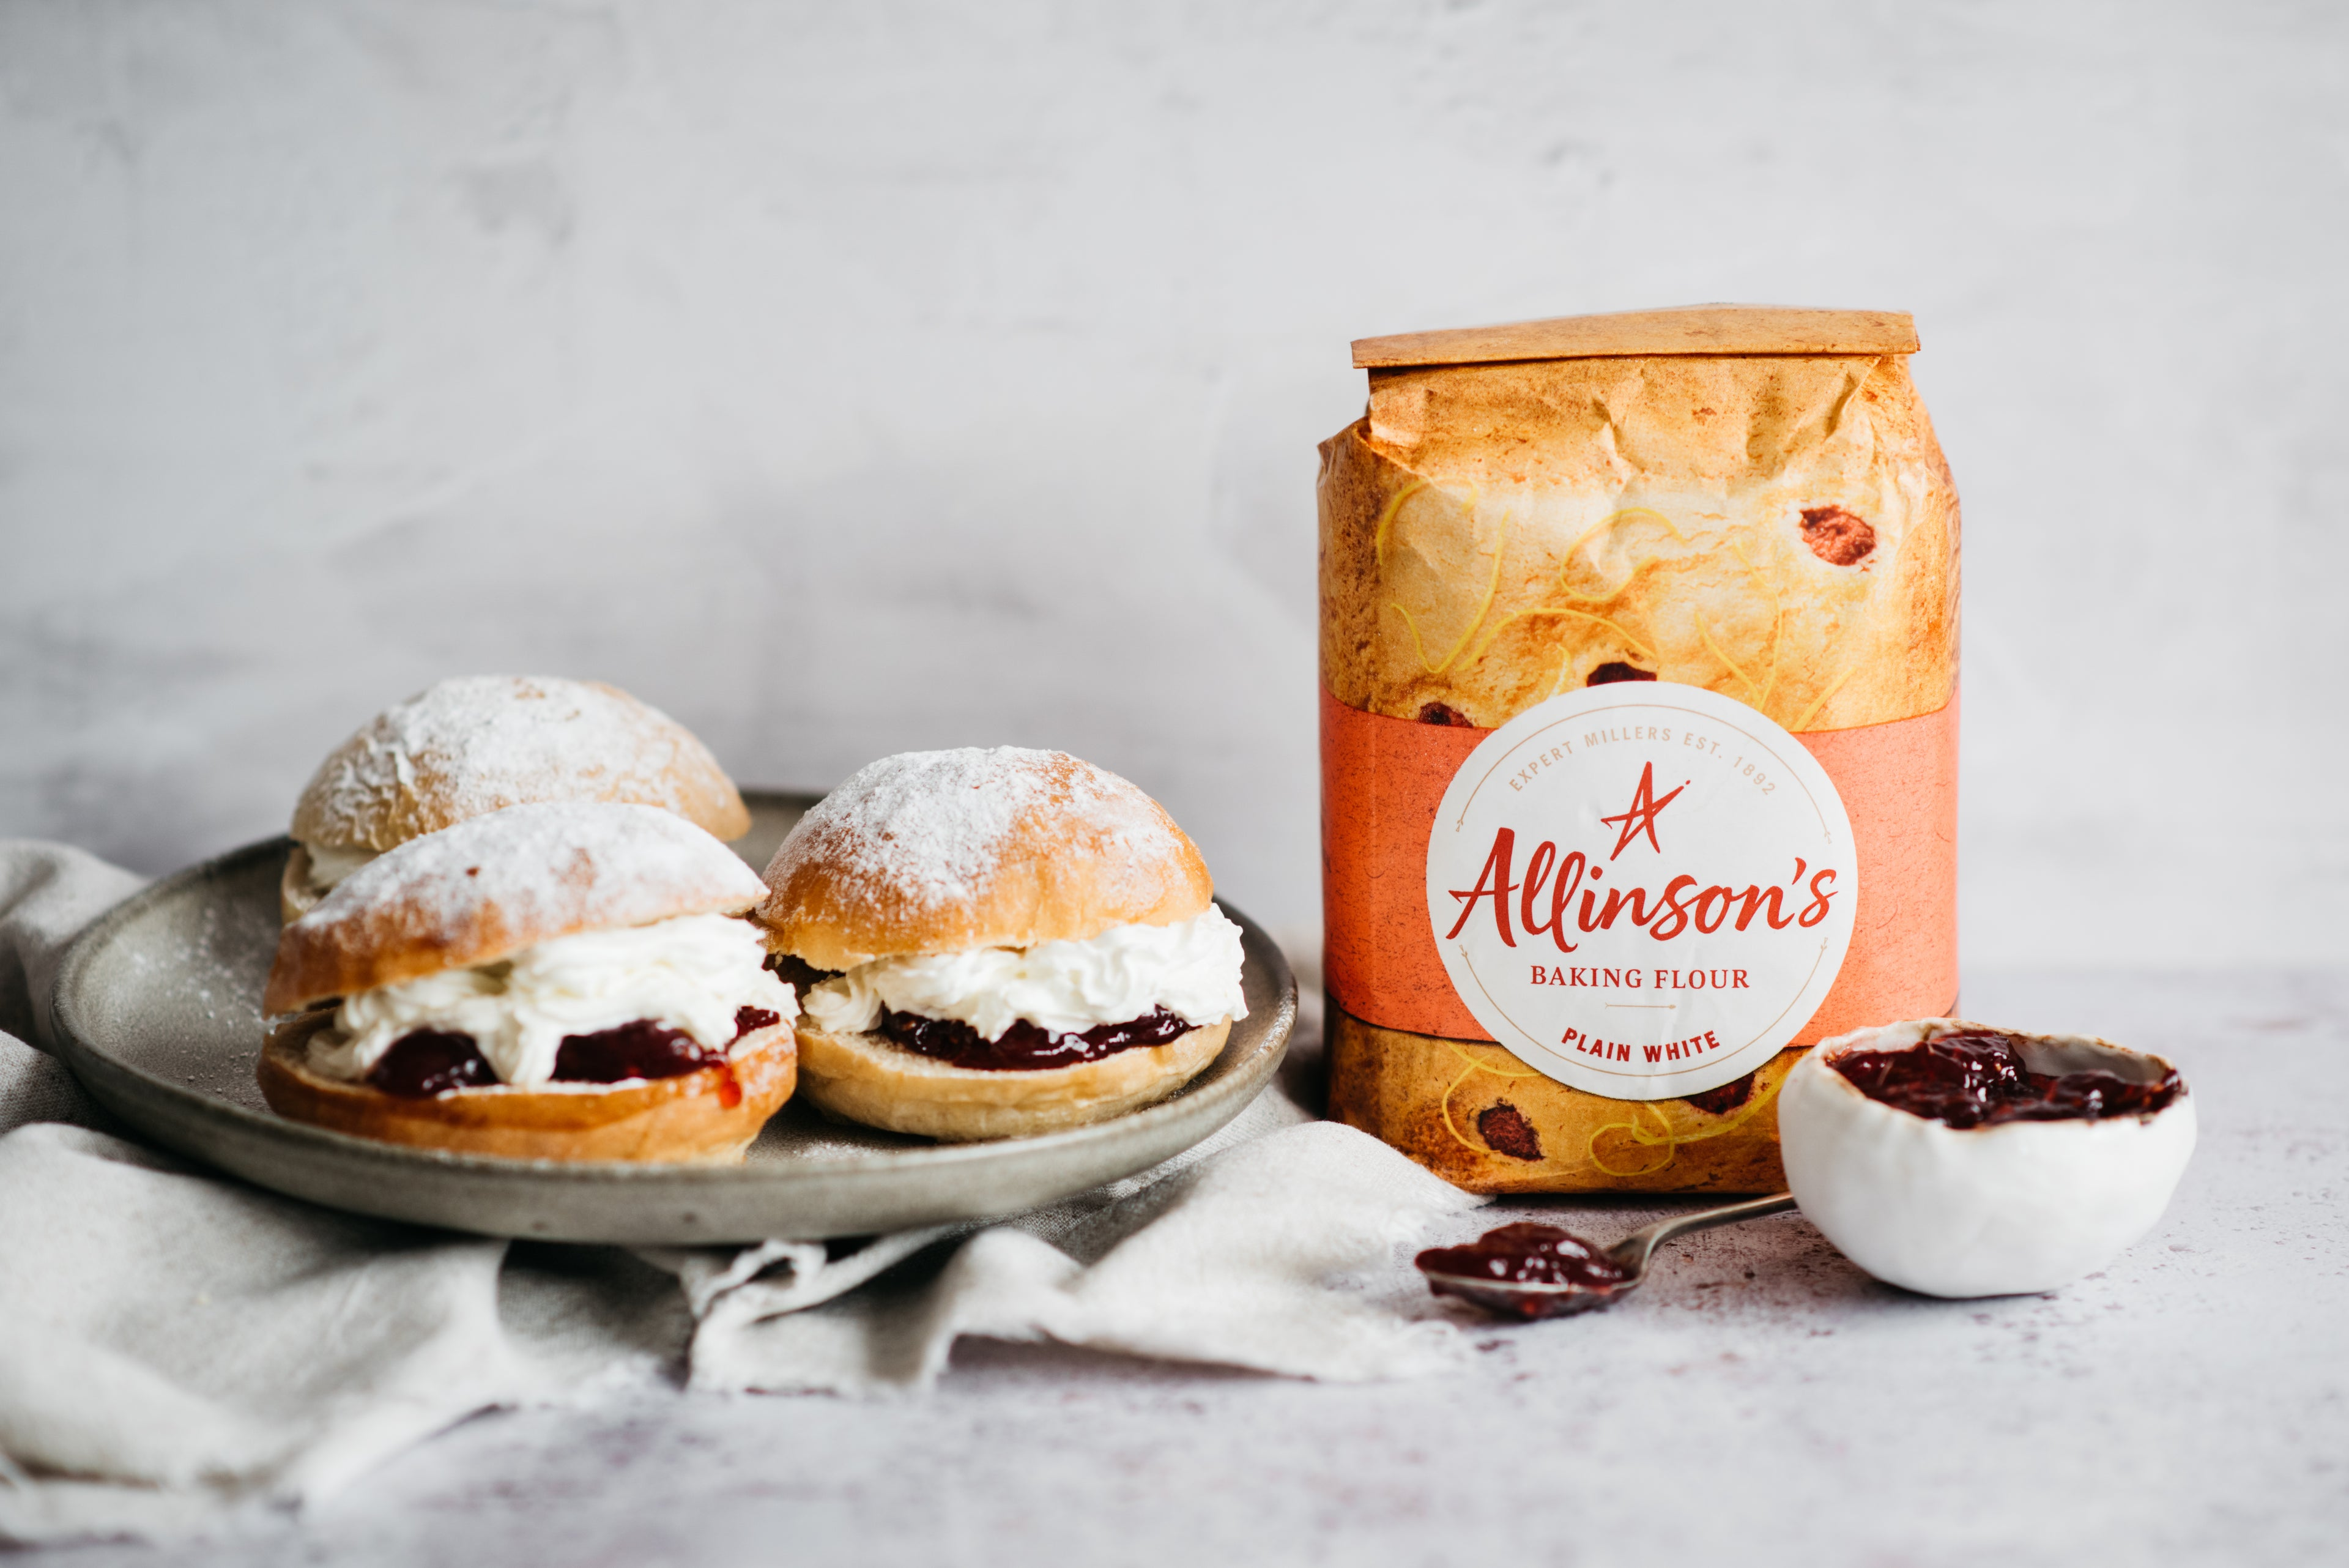 Plate of Devonshire Splits next to a bag of Allinson's plain white flour, with a bowl of jam and a spoon